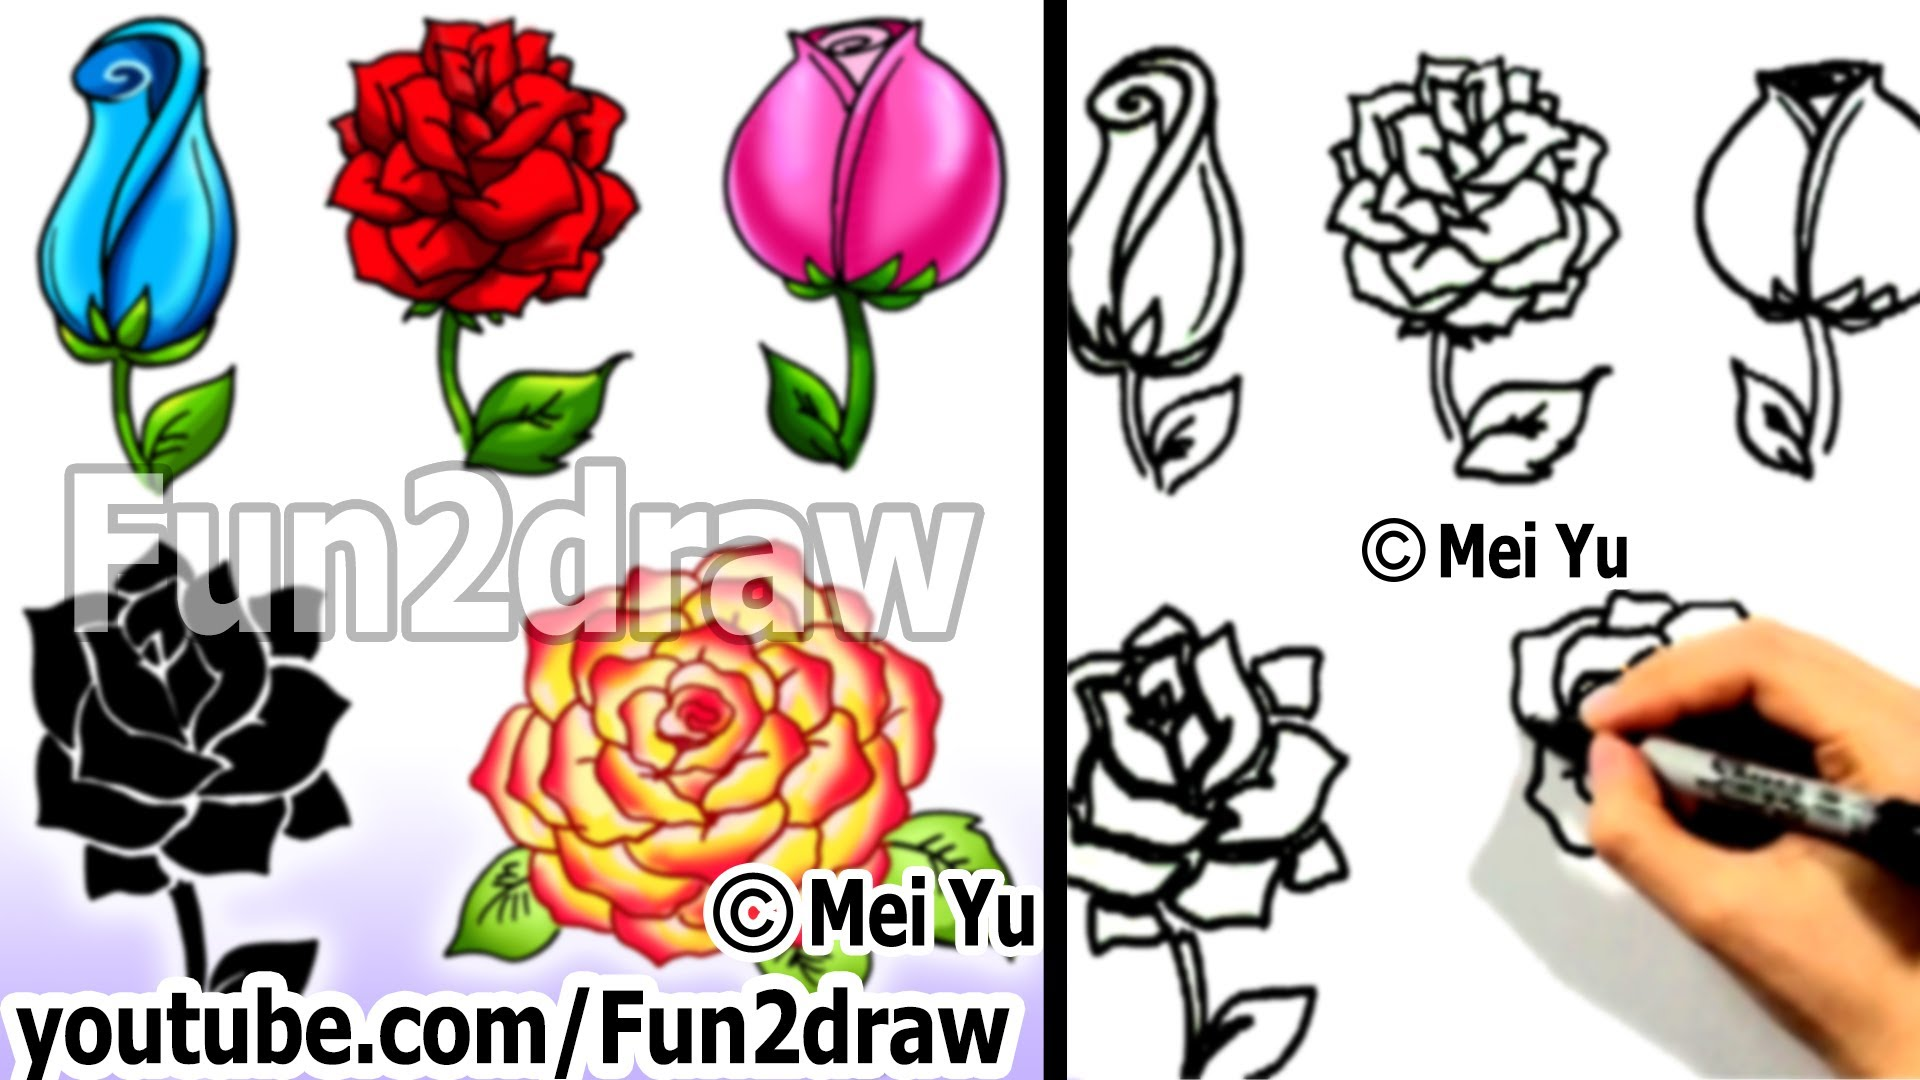 Drawn rose cute Ways Fun2draw Lessons a to